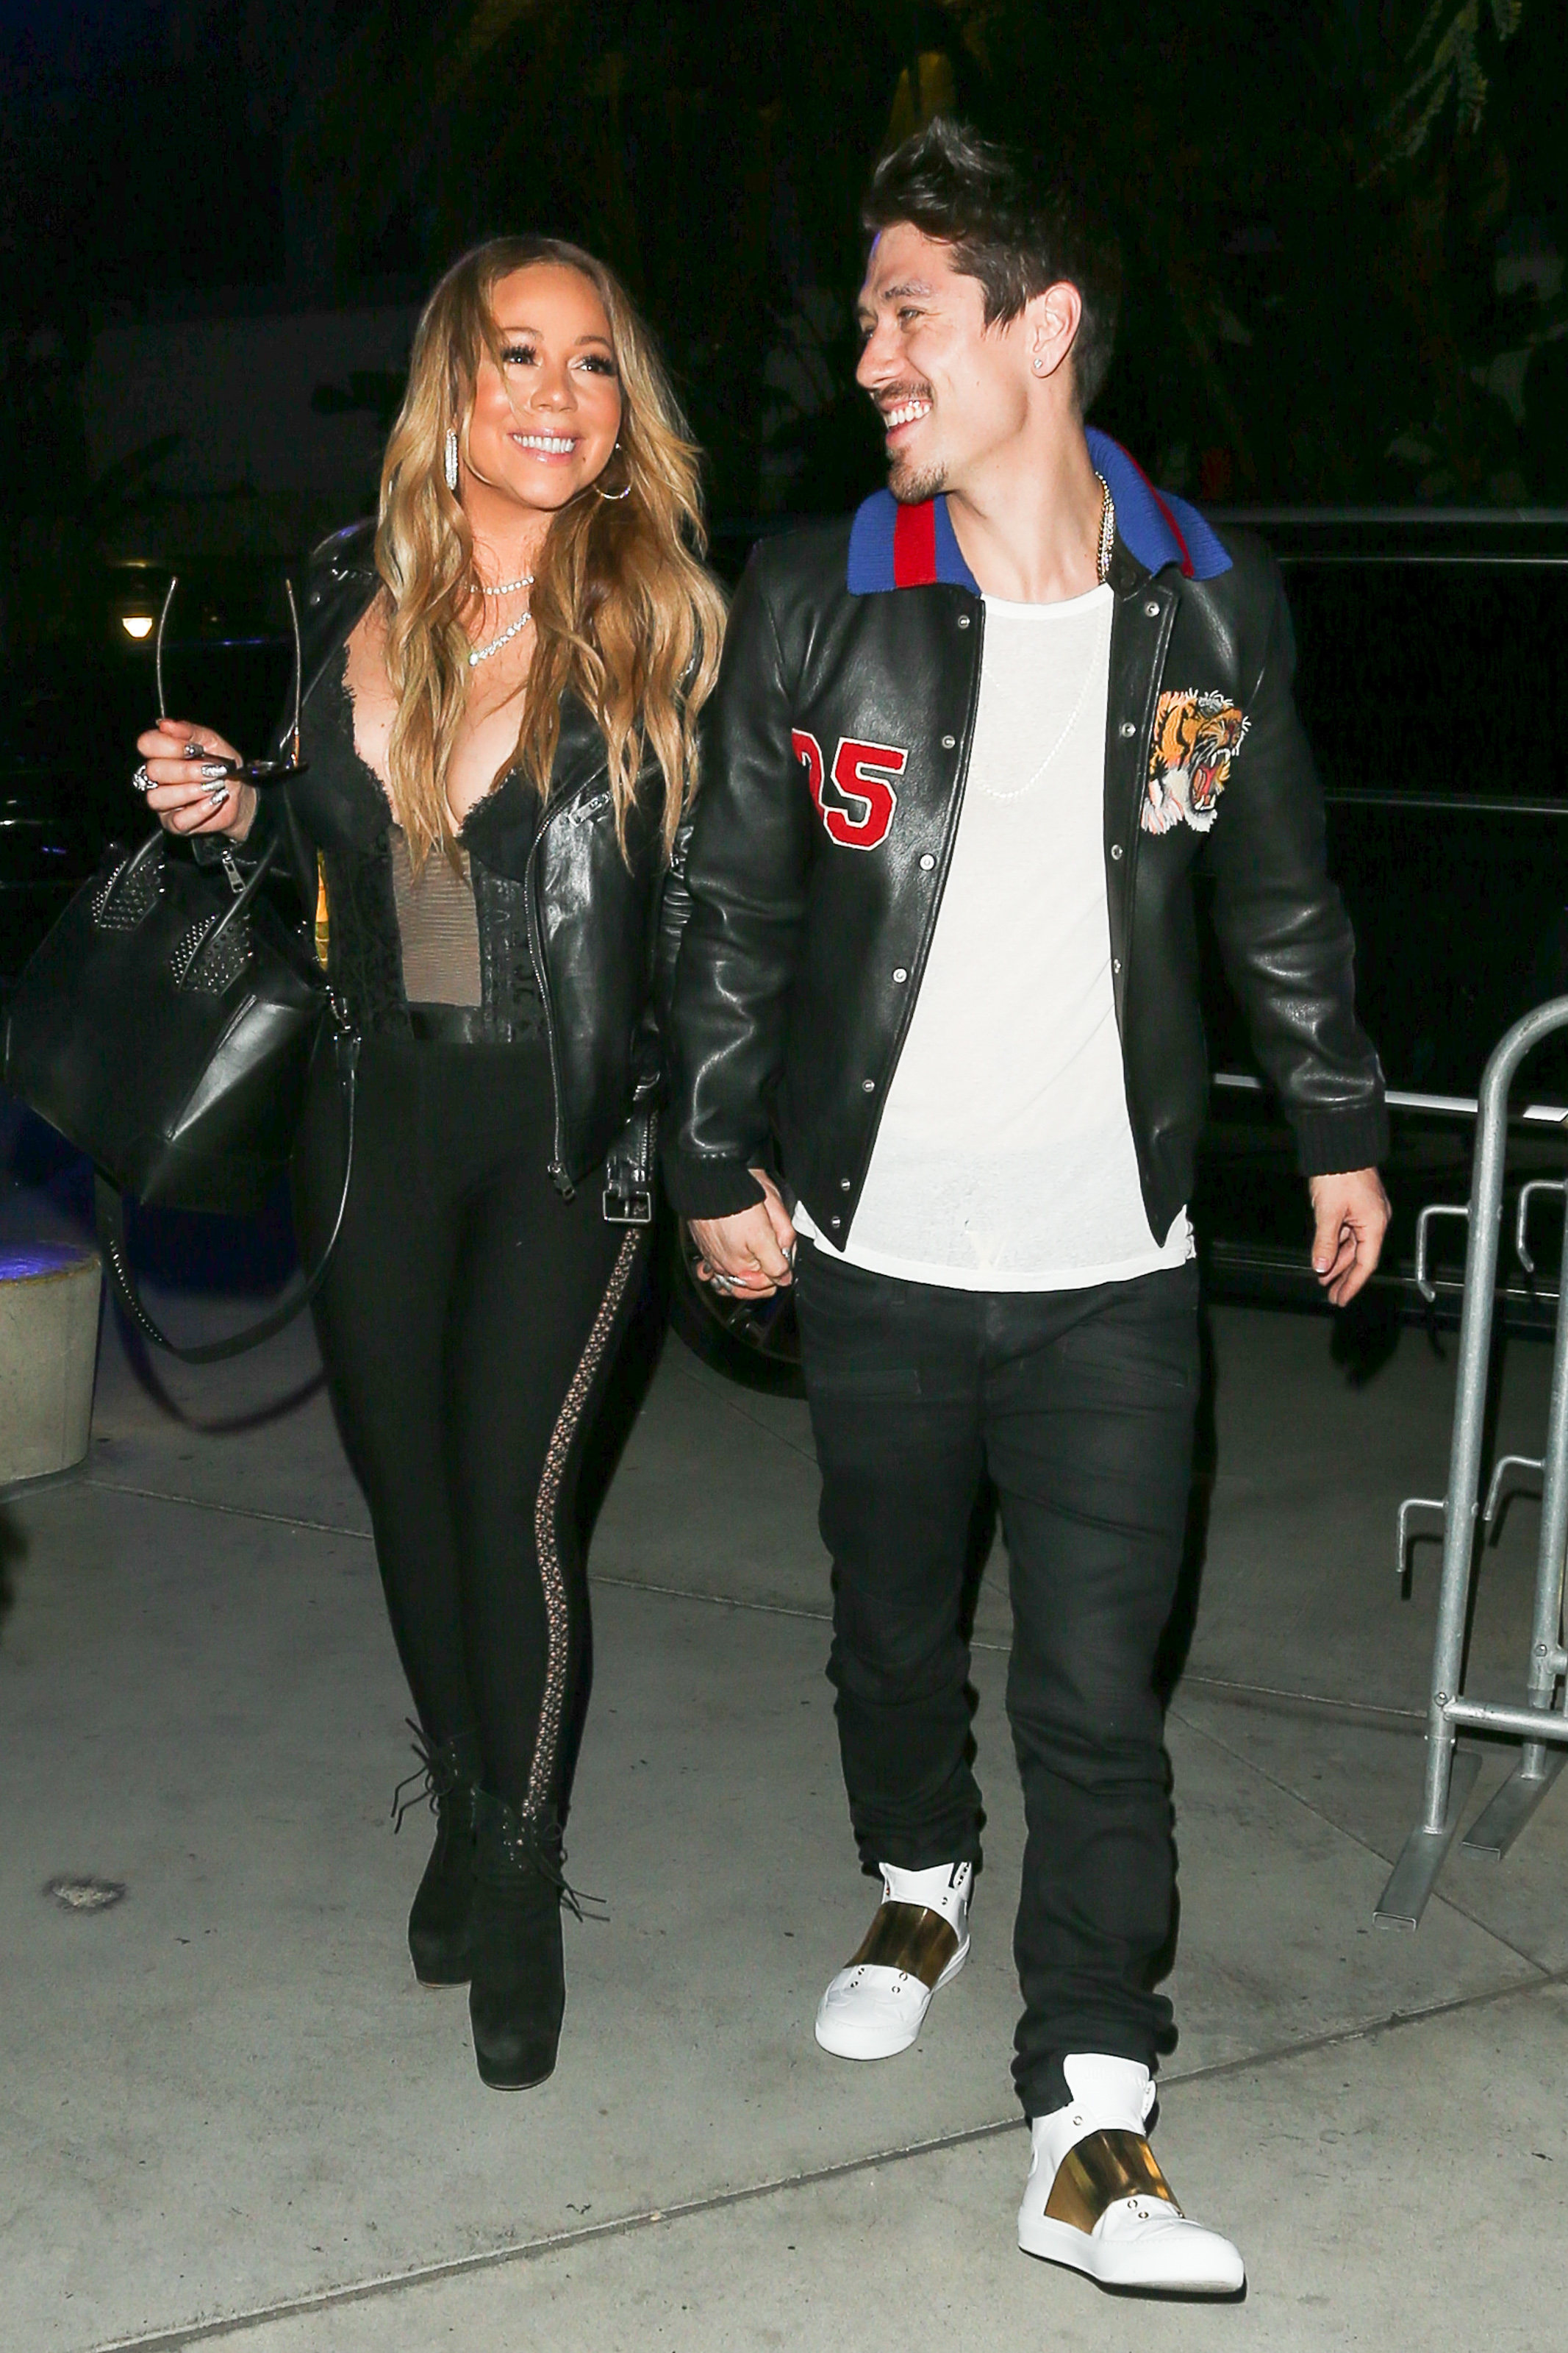 Mariah Carey Shows Off Her Cleavage While Holding Hands With her new flame Bryan Tanaka